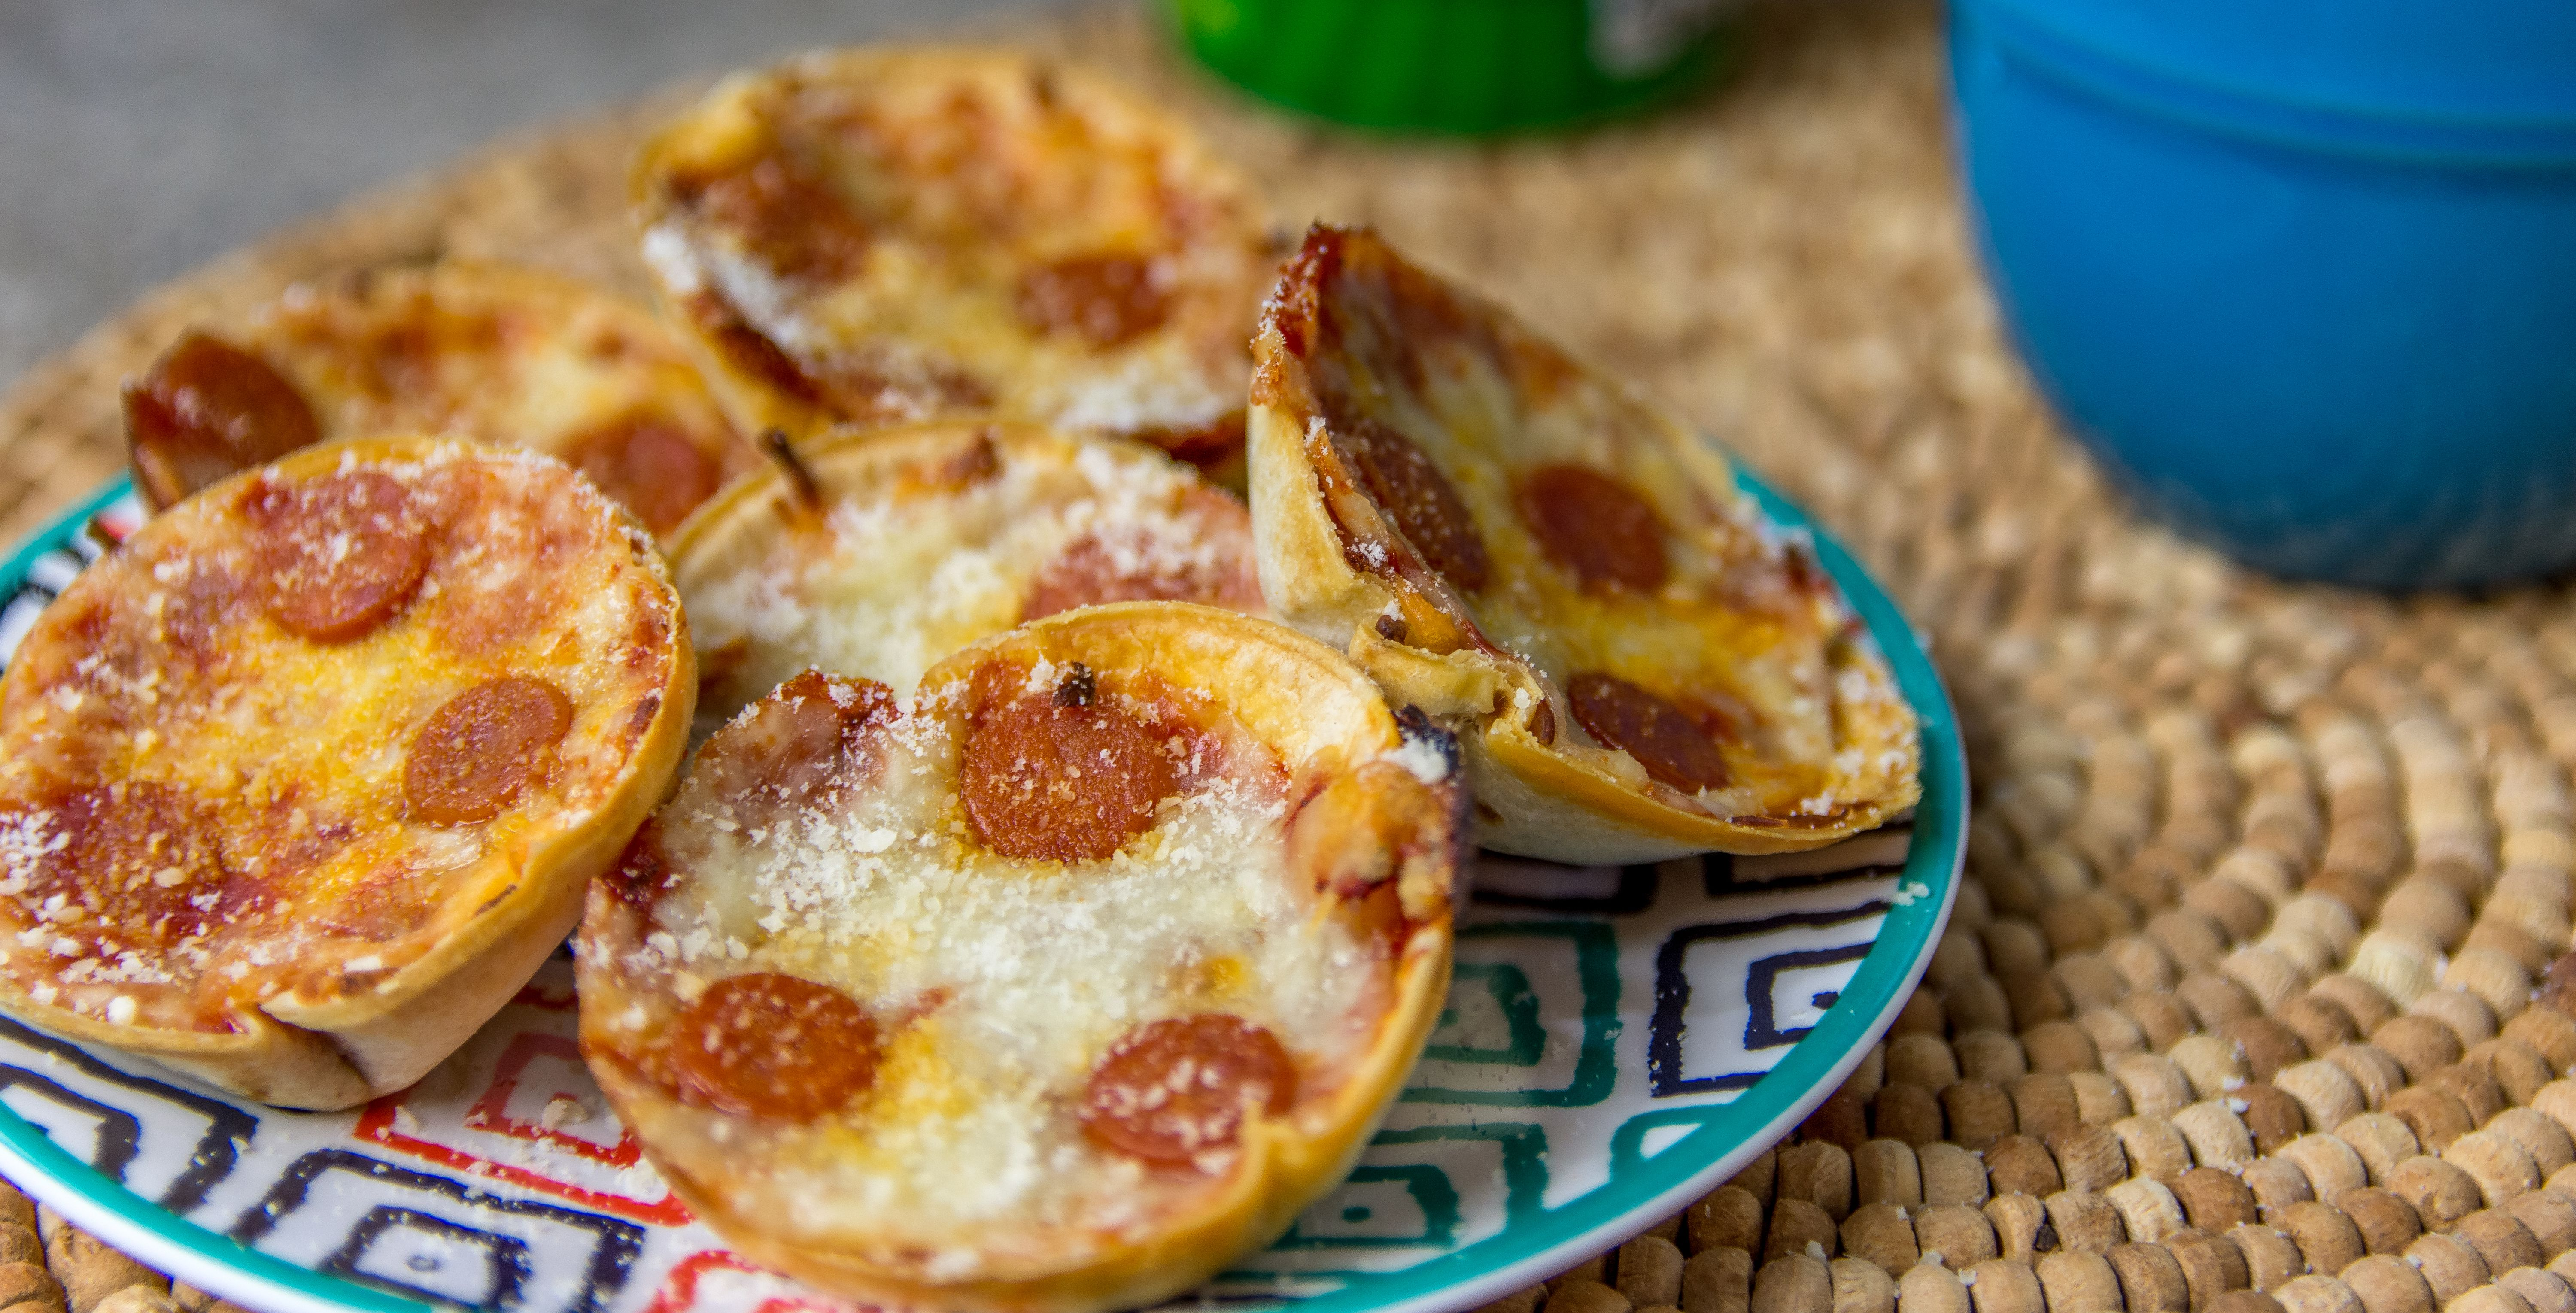 I have a great recipe to show you today of one of my favorite foods, pizza! I'm going to share how to make this delicious Deep Dish Pizza Bites Recipe!